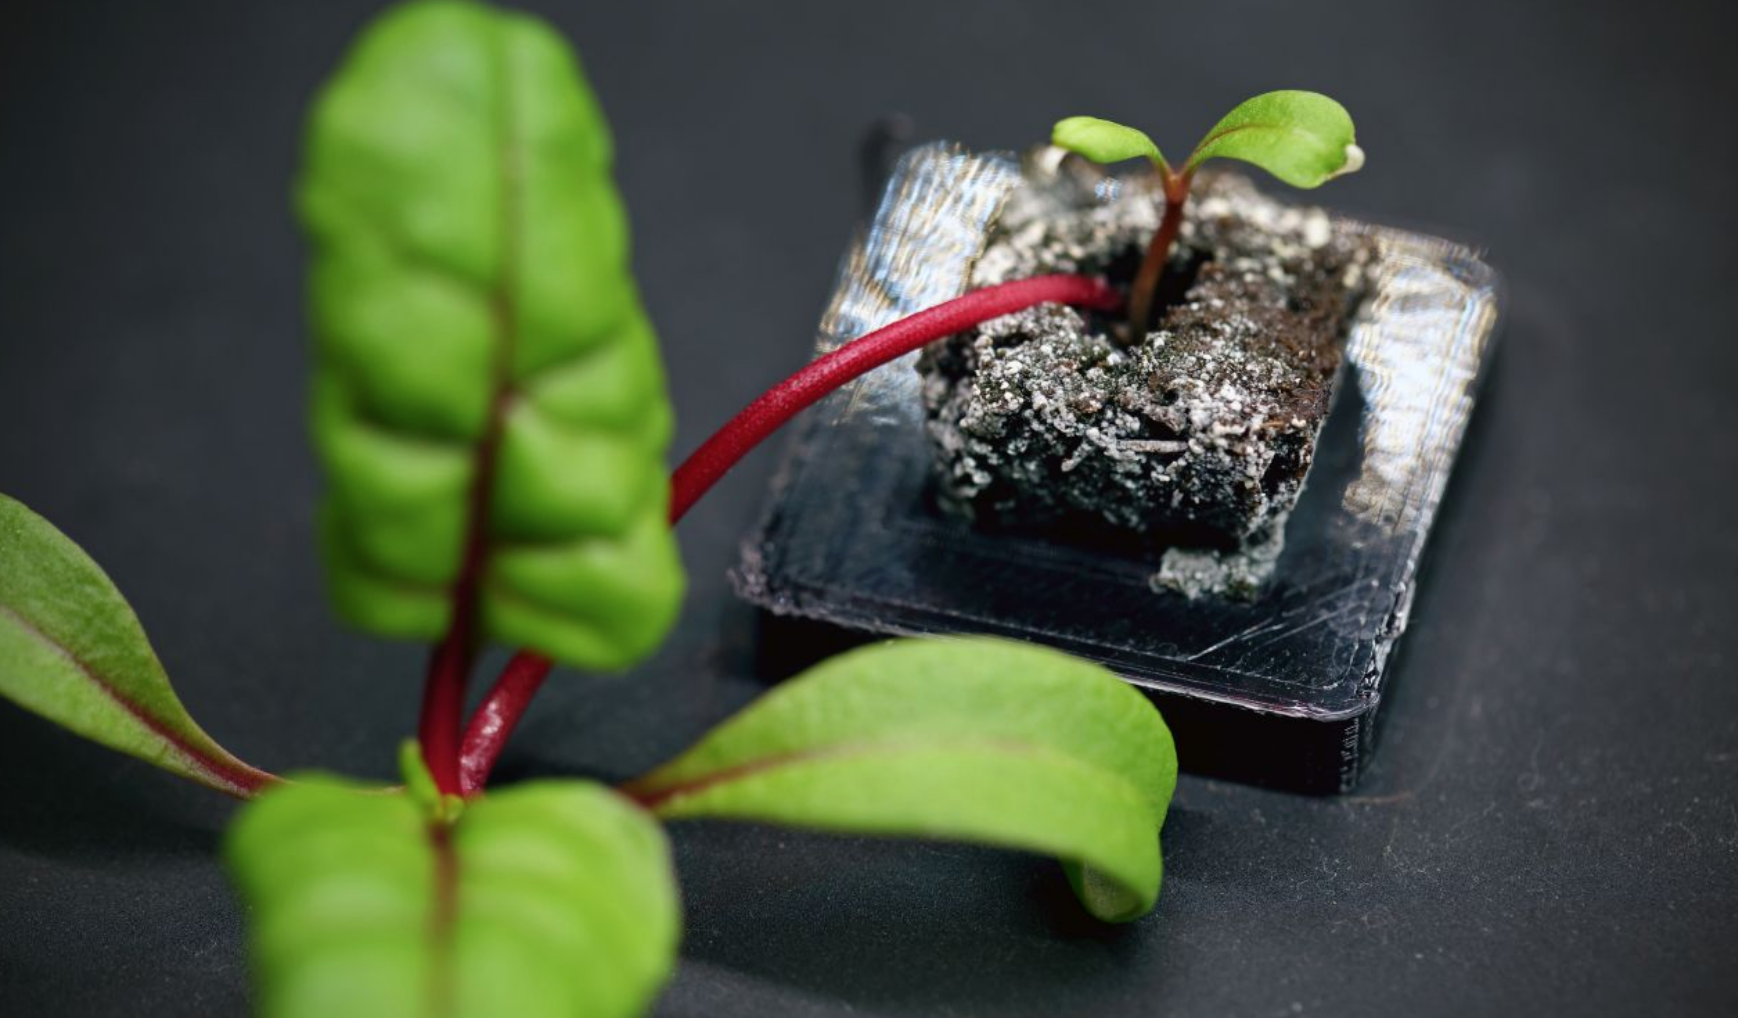 Farmshelf Uses 3D Printed Parts For Smart Indoor Urban Farming | All3DP